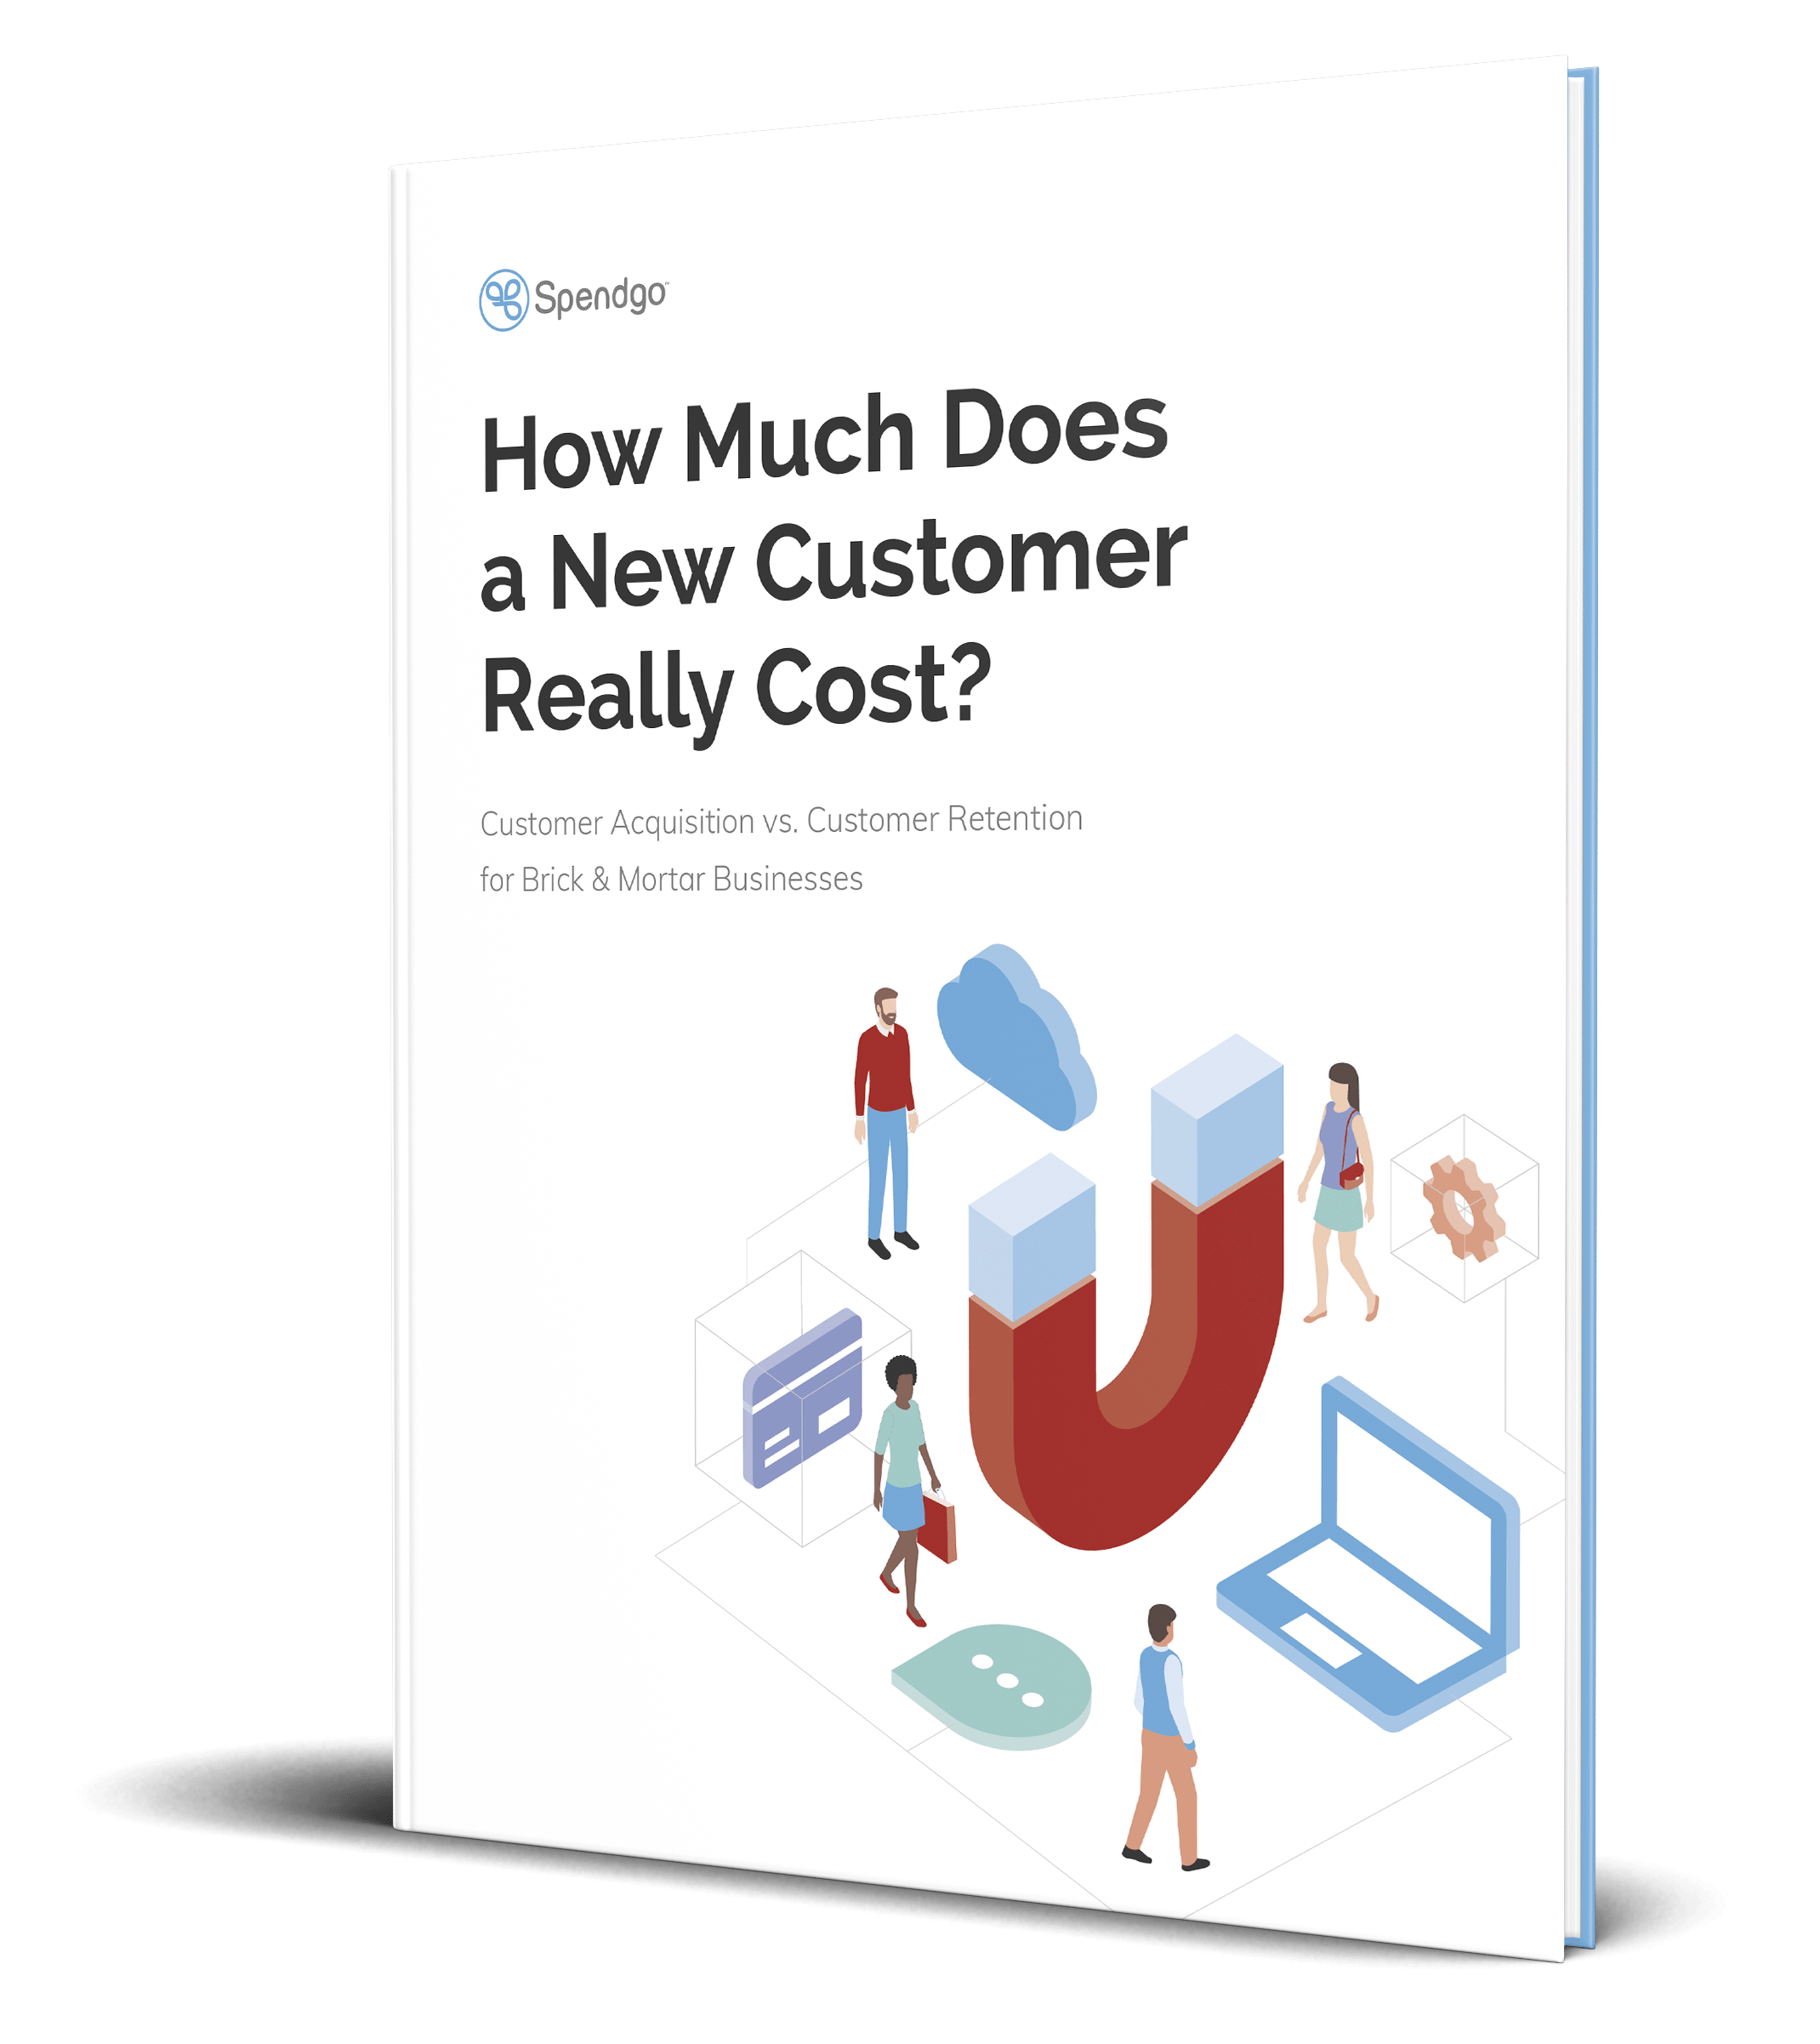 The Cost of Customer Retention vs. Customer Acquisition Whitepaper